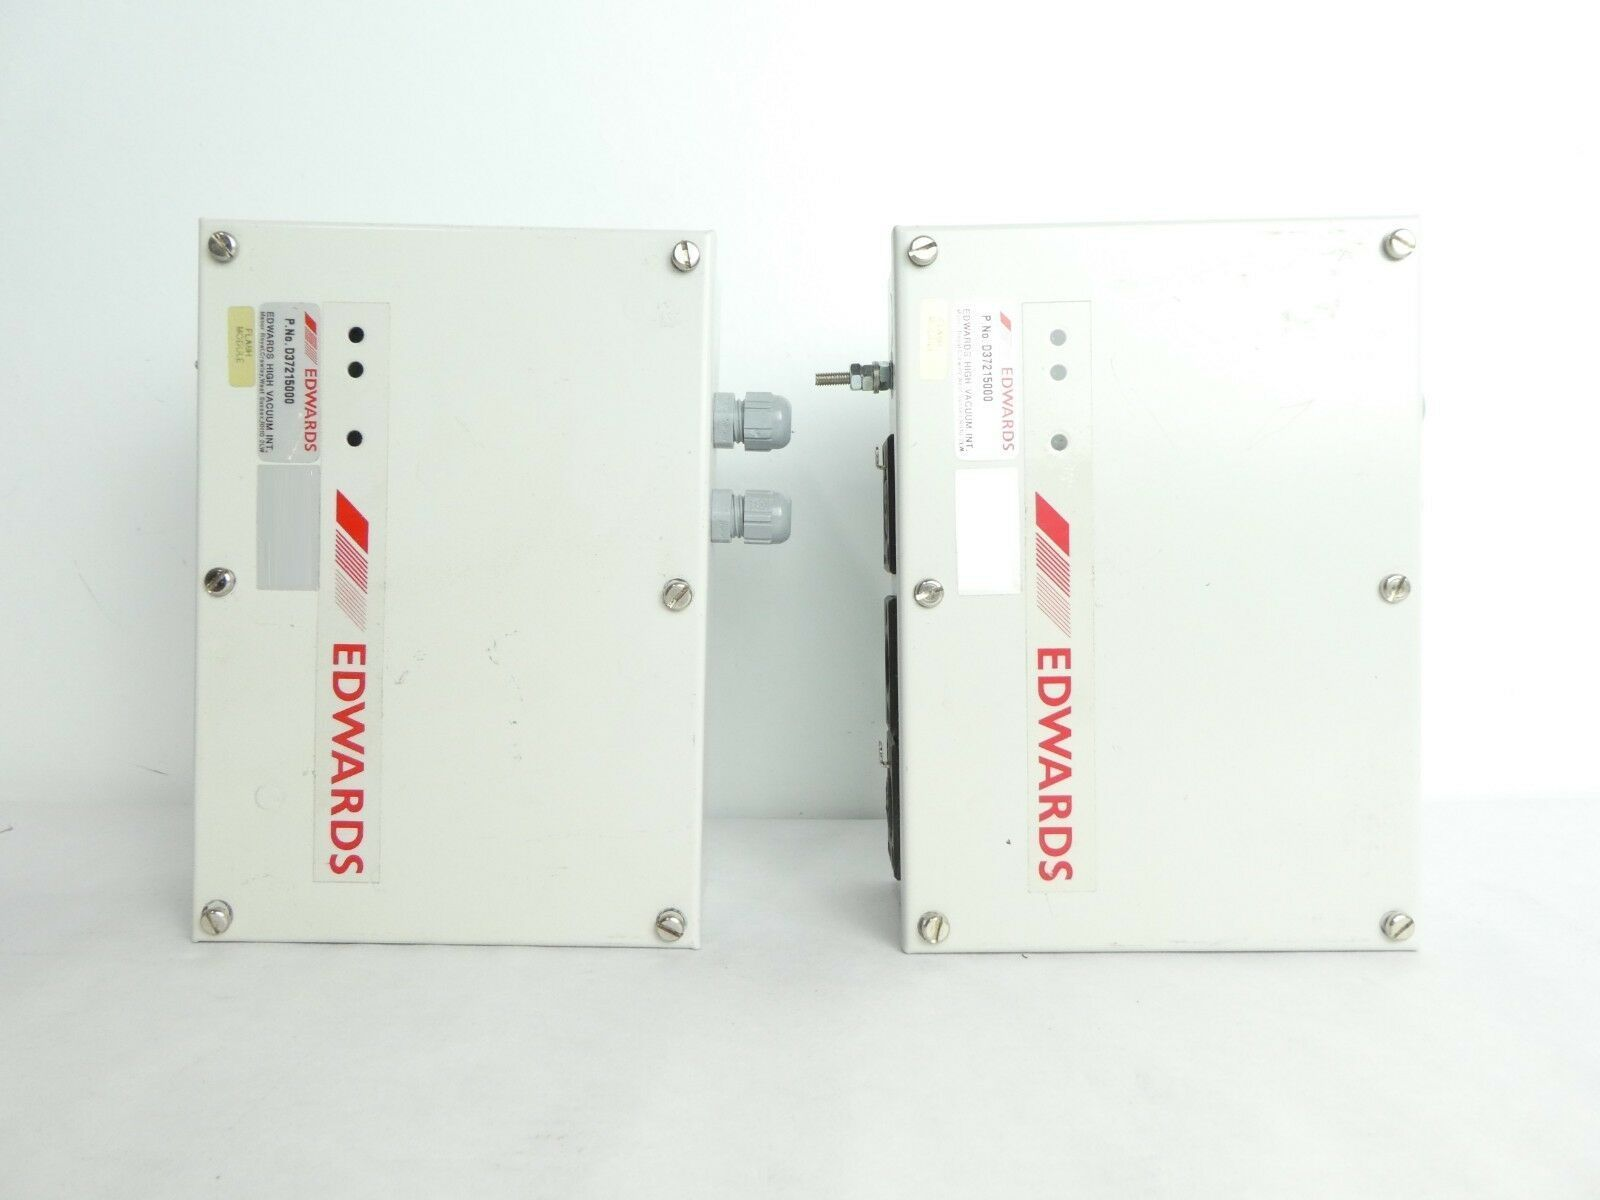 Edwards D37215000 Vacuum Pump Flash Module Lot of 2 Used Working